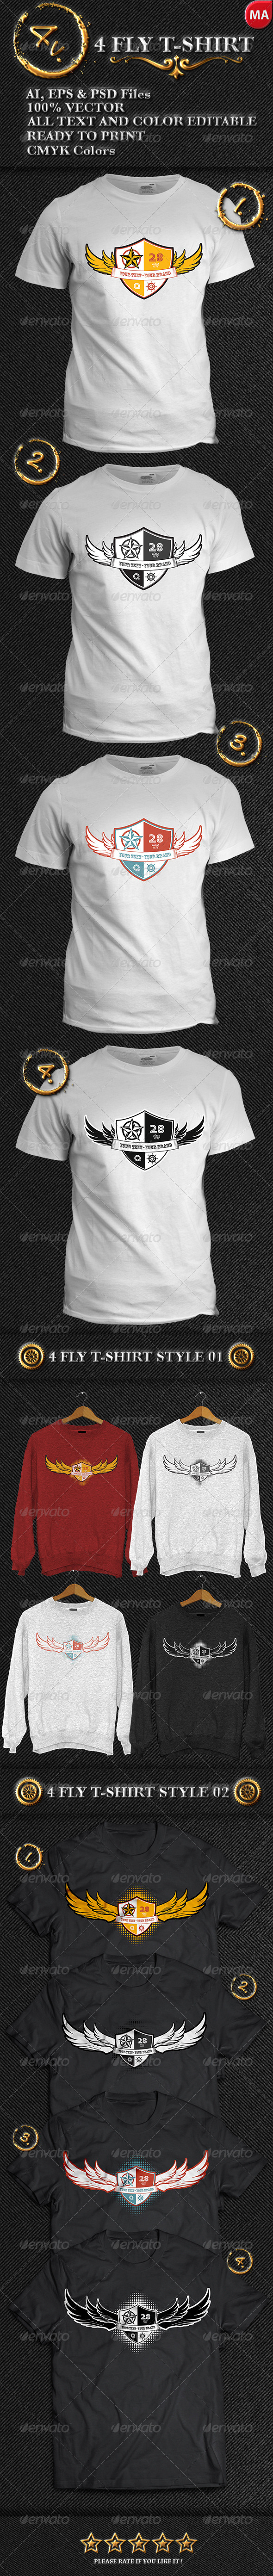 GraphicRiver 4 Fly T-Shirt 7665600